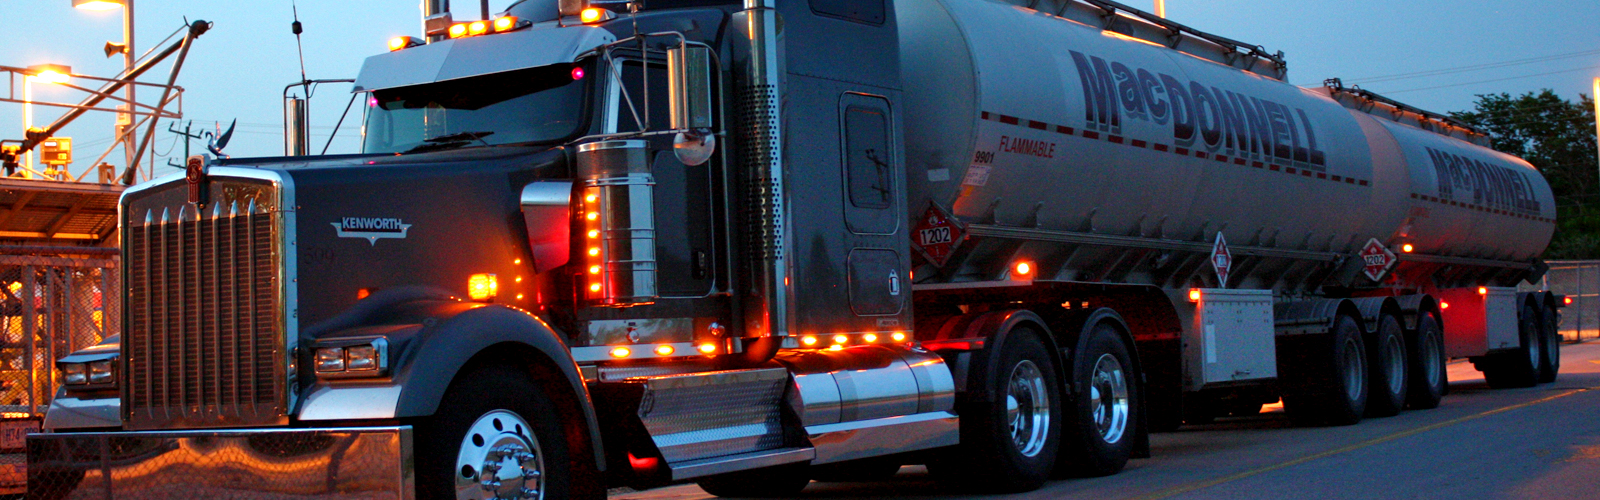 MacDonnell Truck at Night